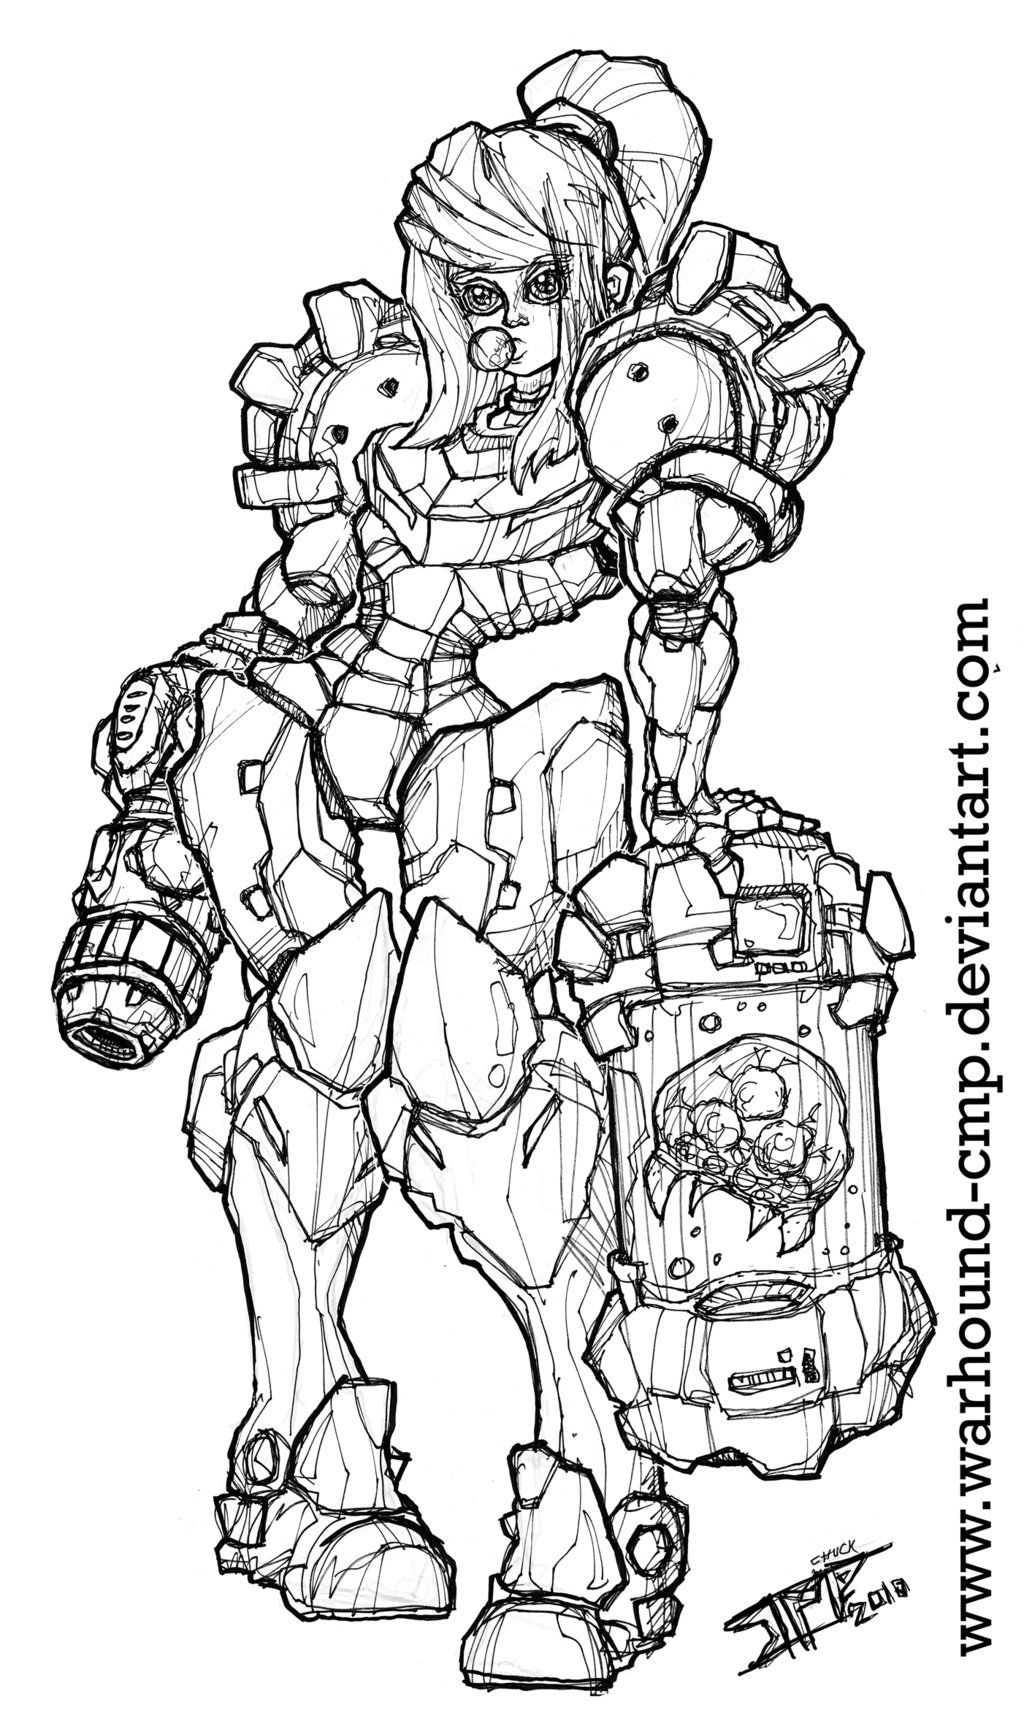 SAMUS Metroid INKS 07282010 by Warhound-CMP on DeviantArt